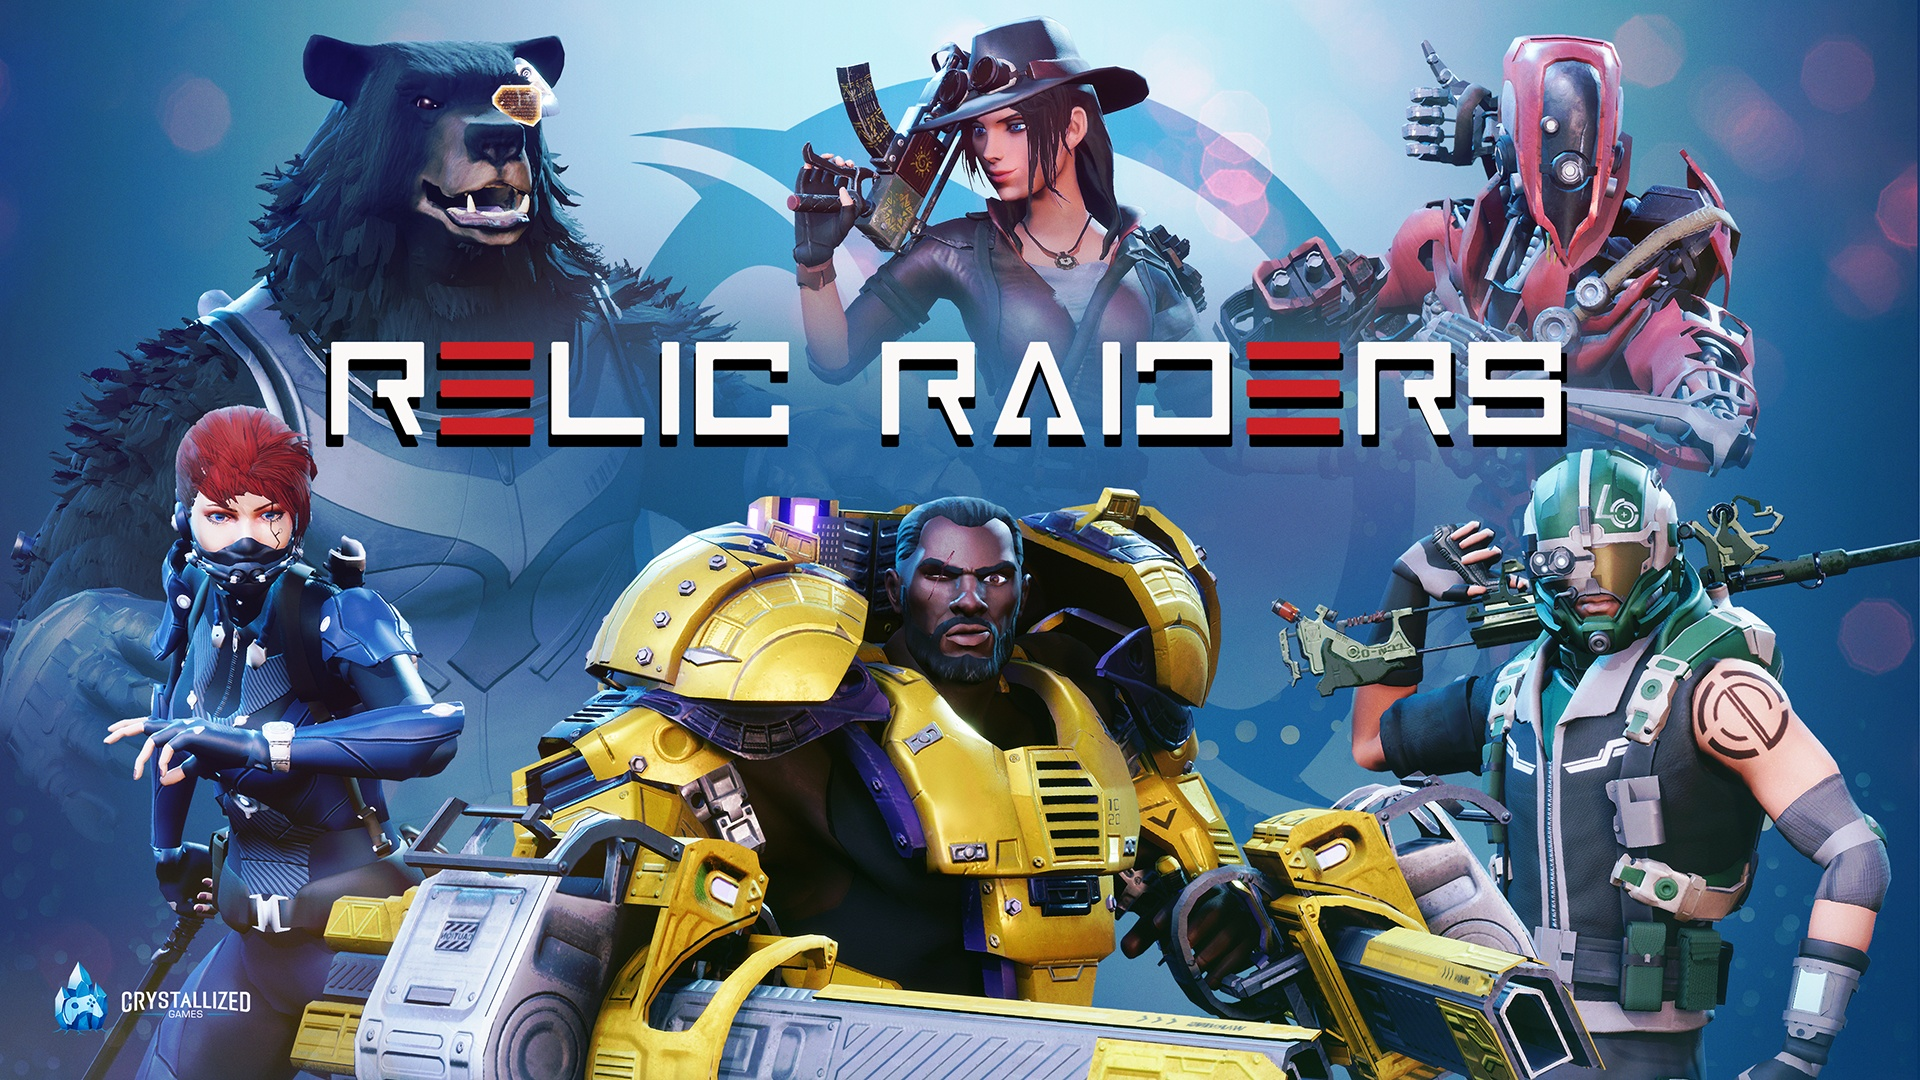 Play Relic Raiders today, a free-to-play battle royale shooter screenshot